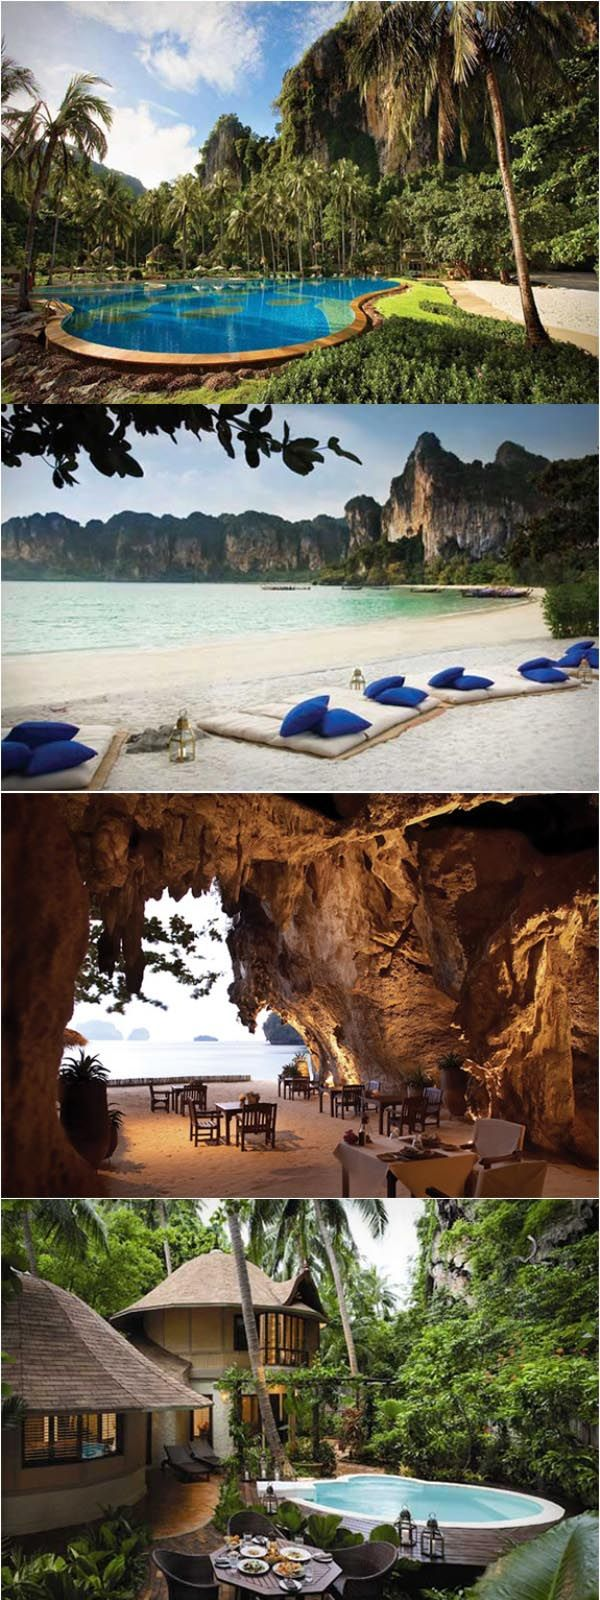 Rayavadee Resort, Krabi, Thailand - Explore the World with Travel Nerd Nici, one Country at a Time. http://TravelNerdNici.com